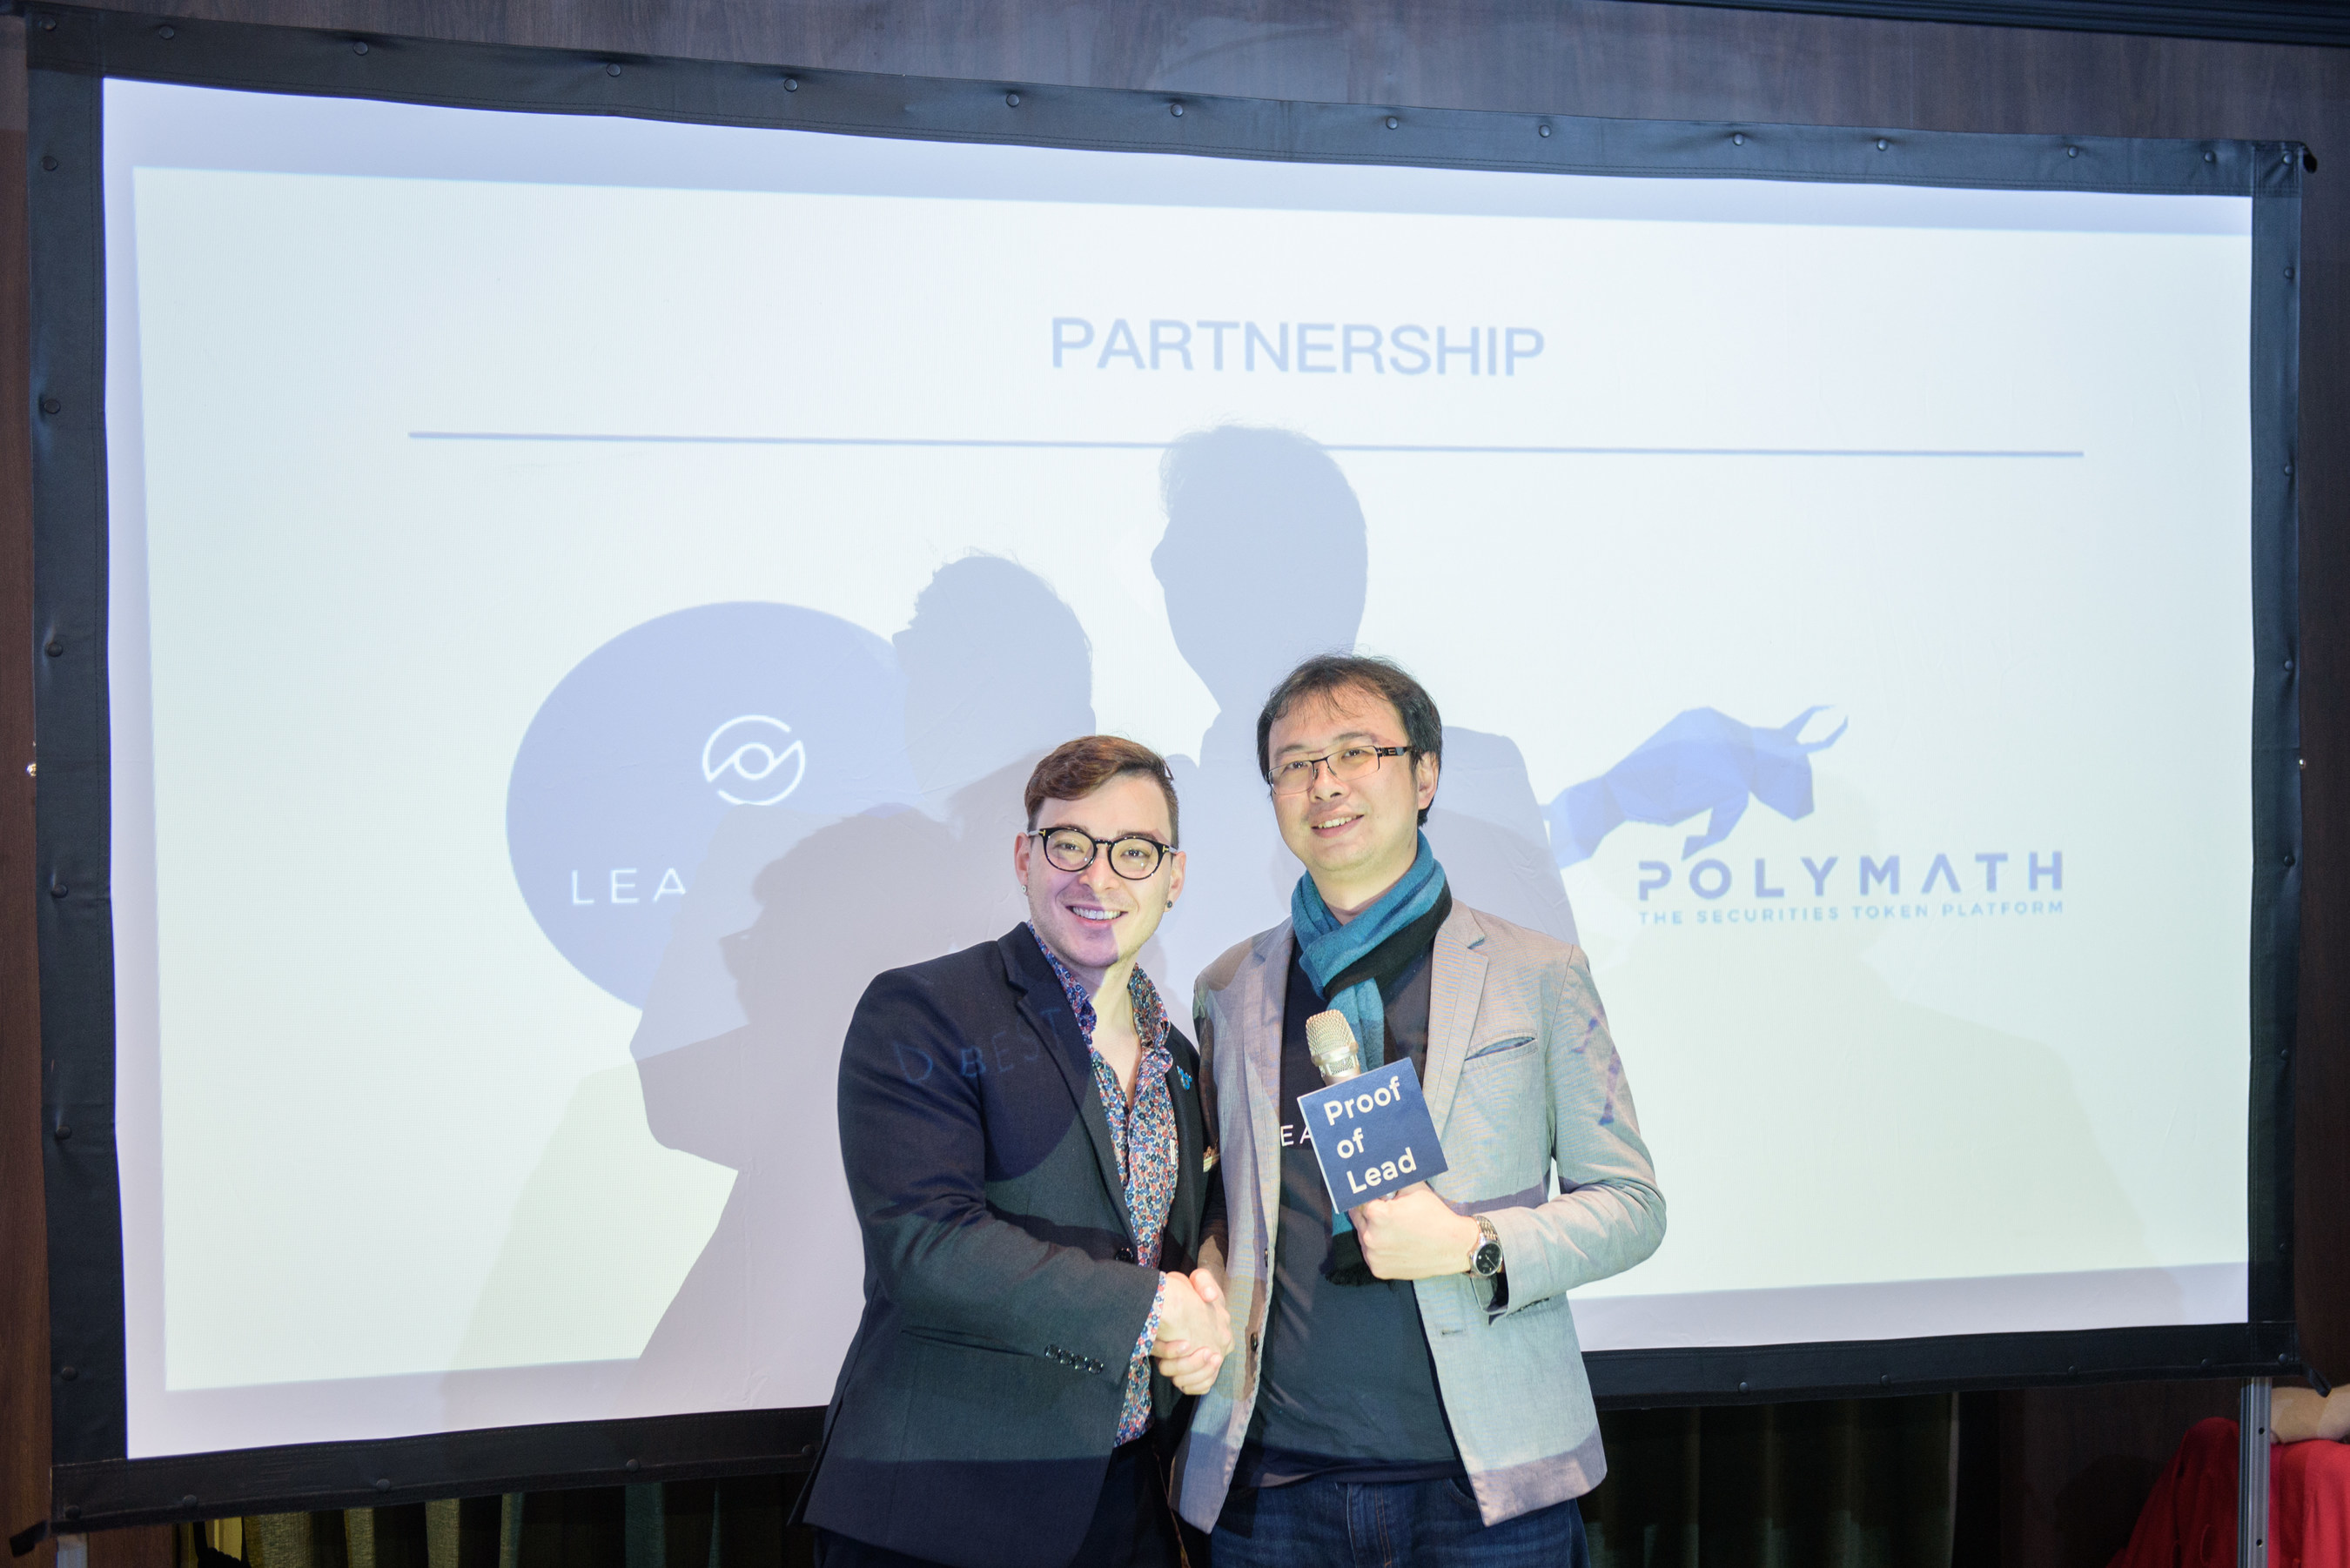 Heslin Kim, VP of Business Development at Polymath, and Neil Lee, co-founder and CEO of LeadBest, jointly announce their strategic partnership in Taiwan